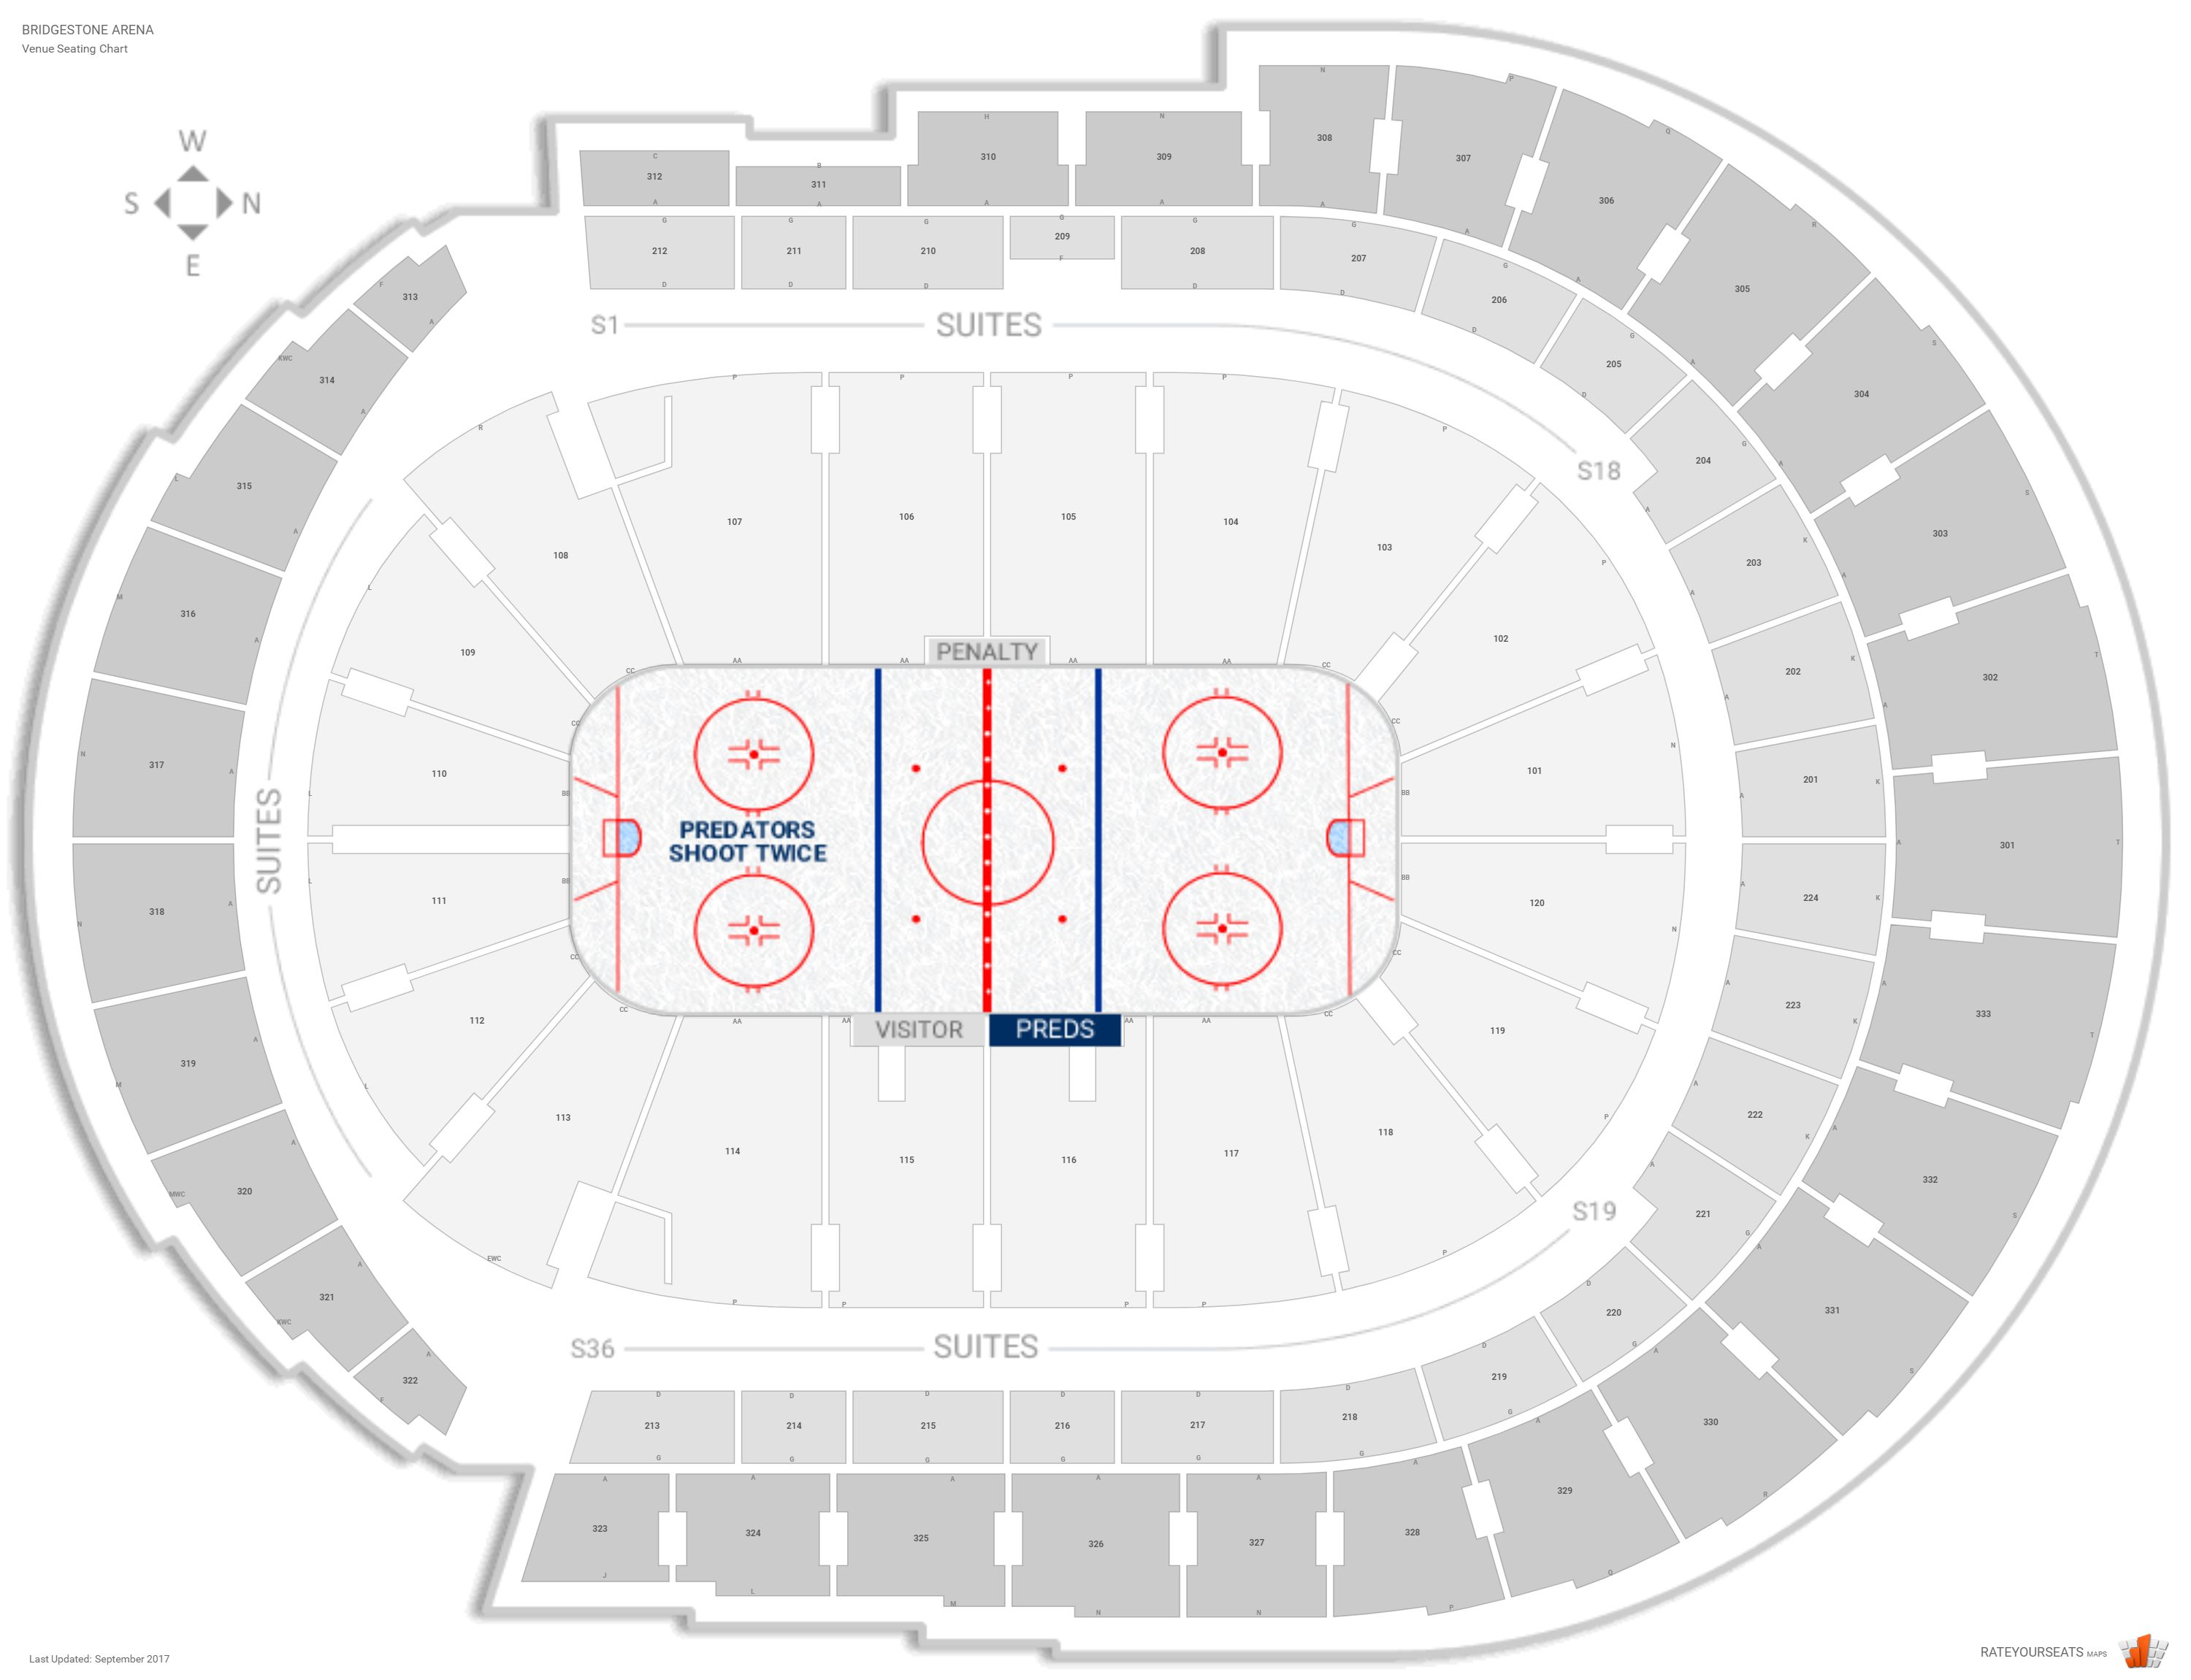 Nashville predators seating guide bridgestone arena